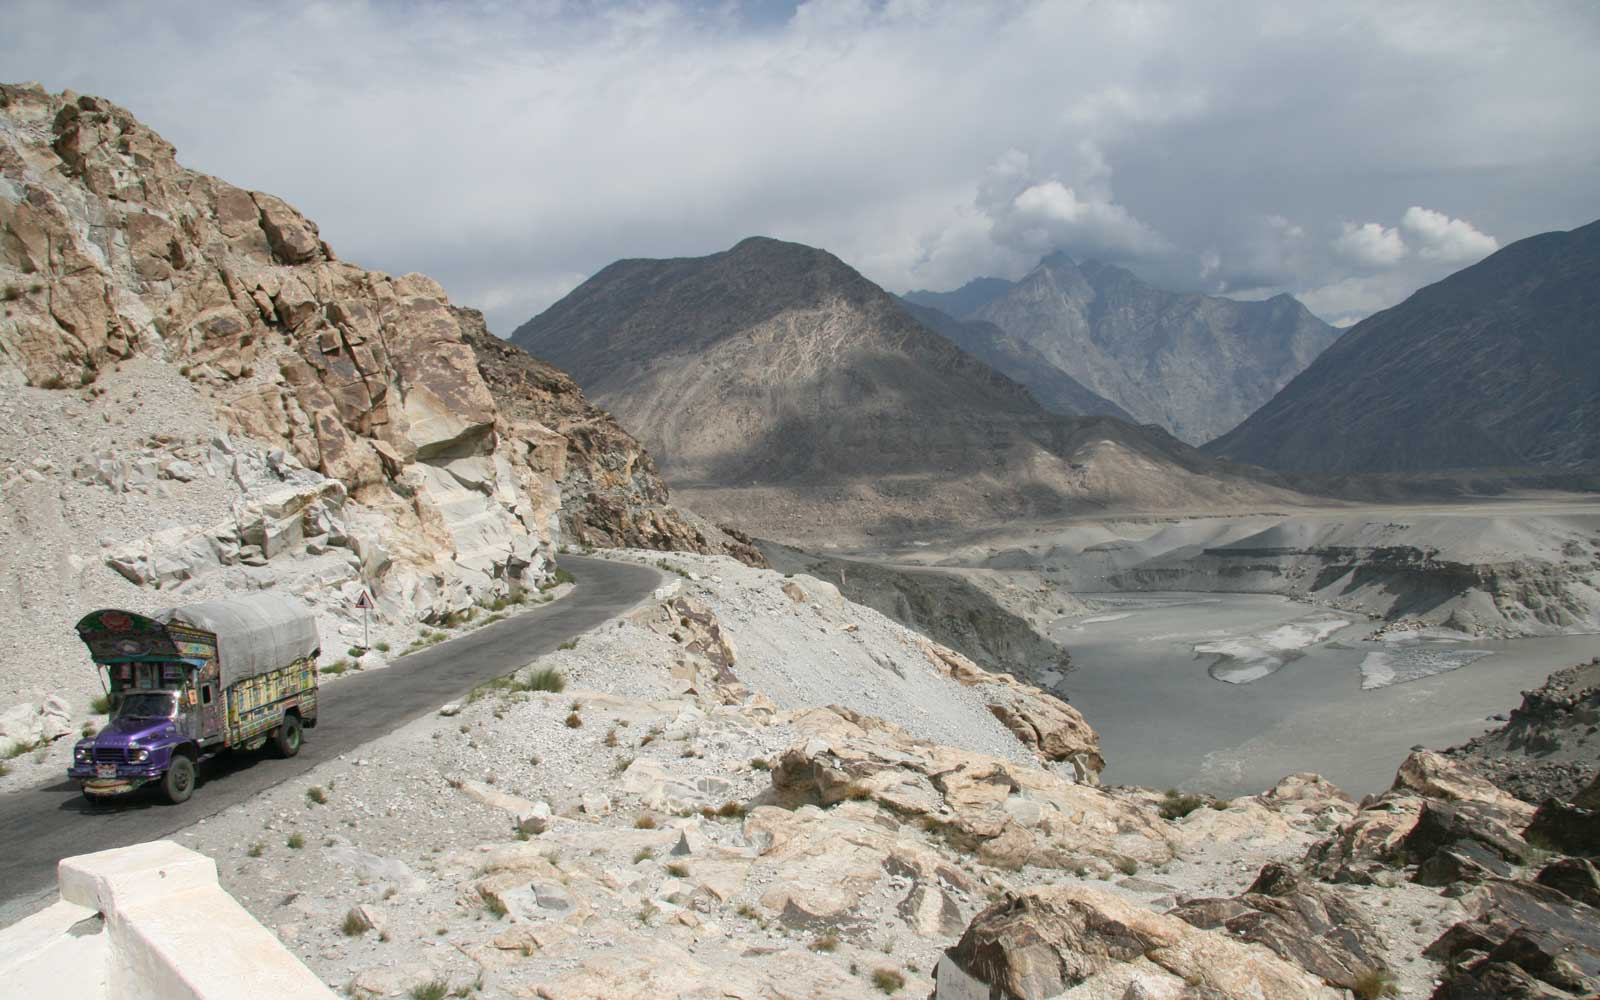 Karakoram Highway Pakistan and Indus RiverChina-Pakistan Karakoram Highway